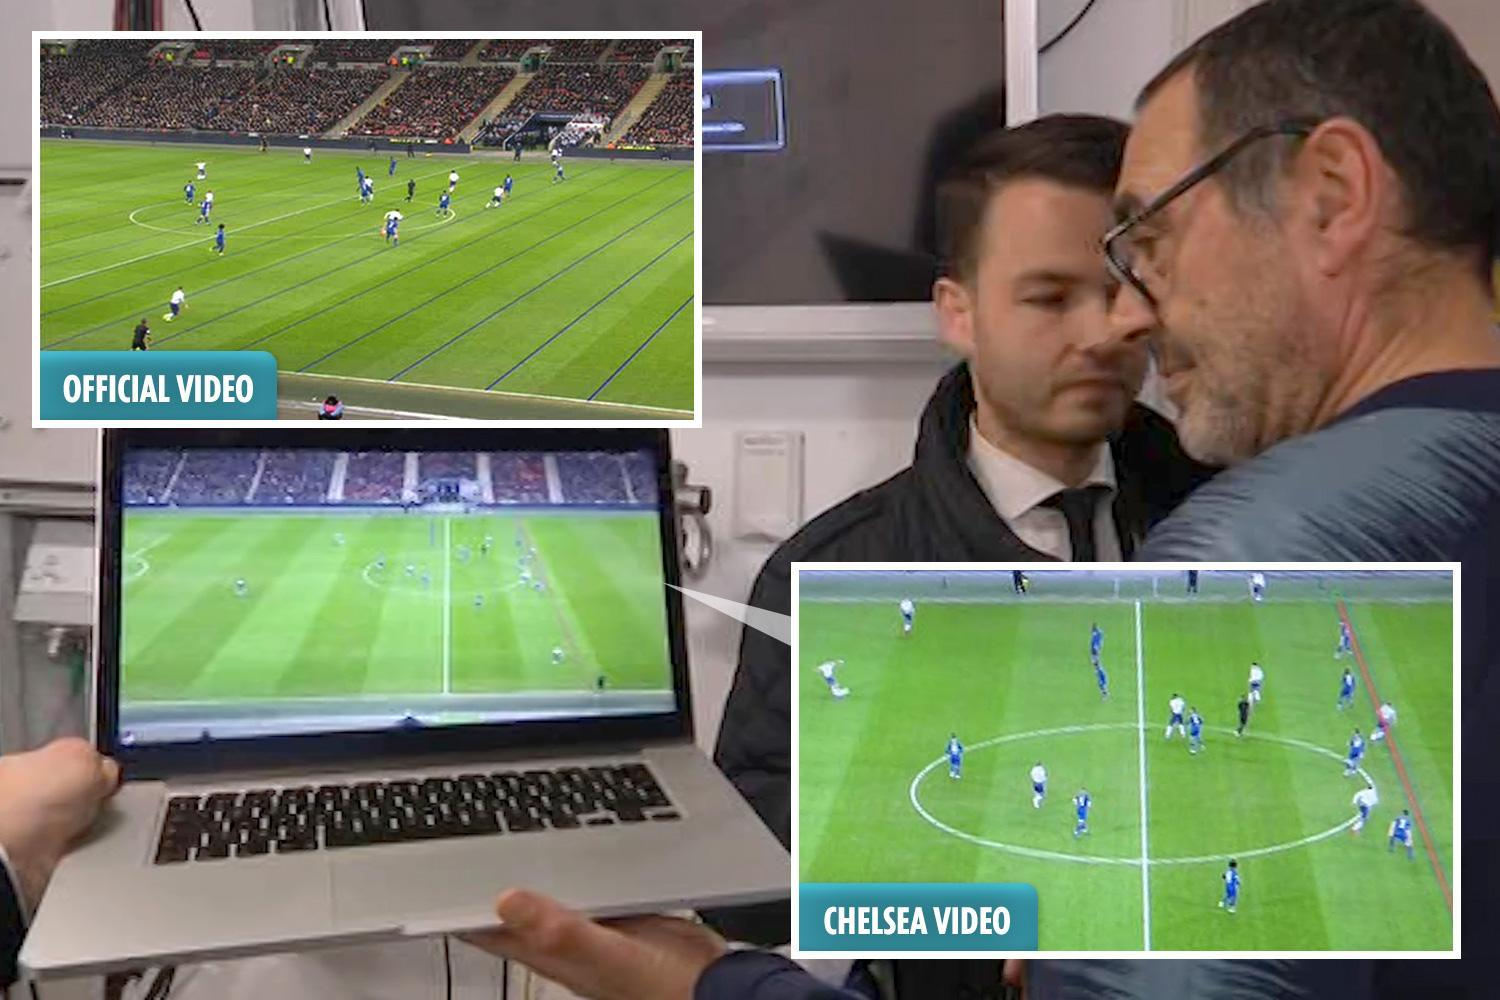 Chelsea 'proof' Harry Kane was offside rubbished by VAR refs' chiefs